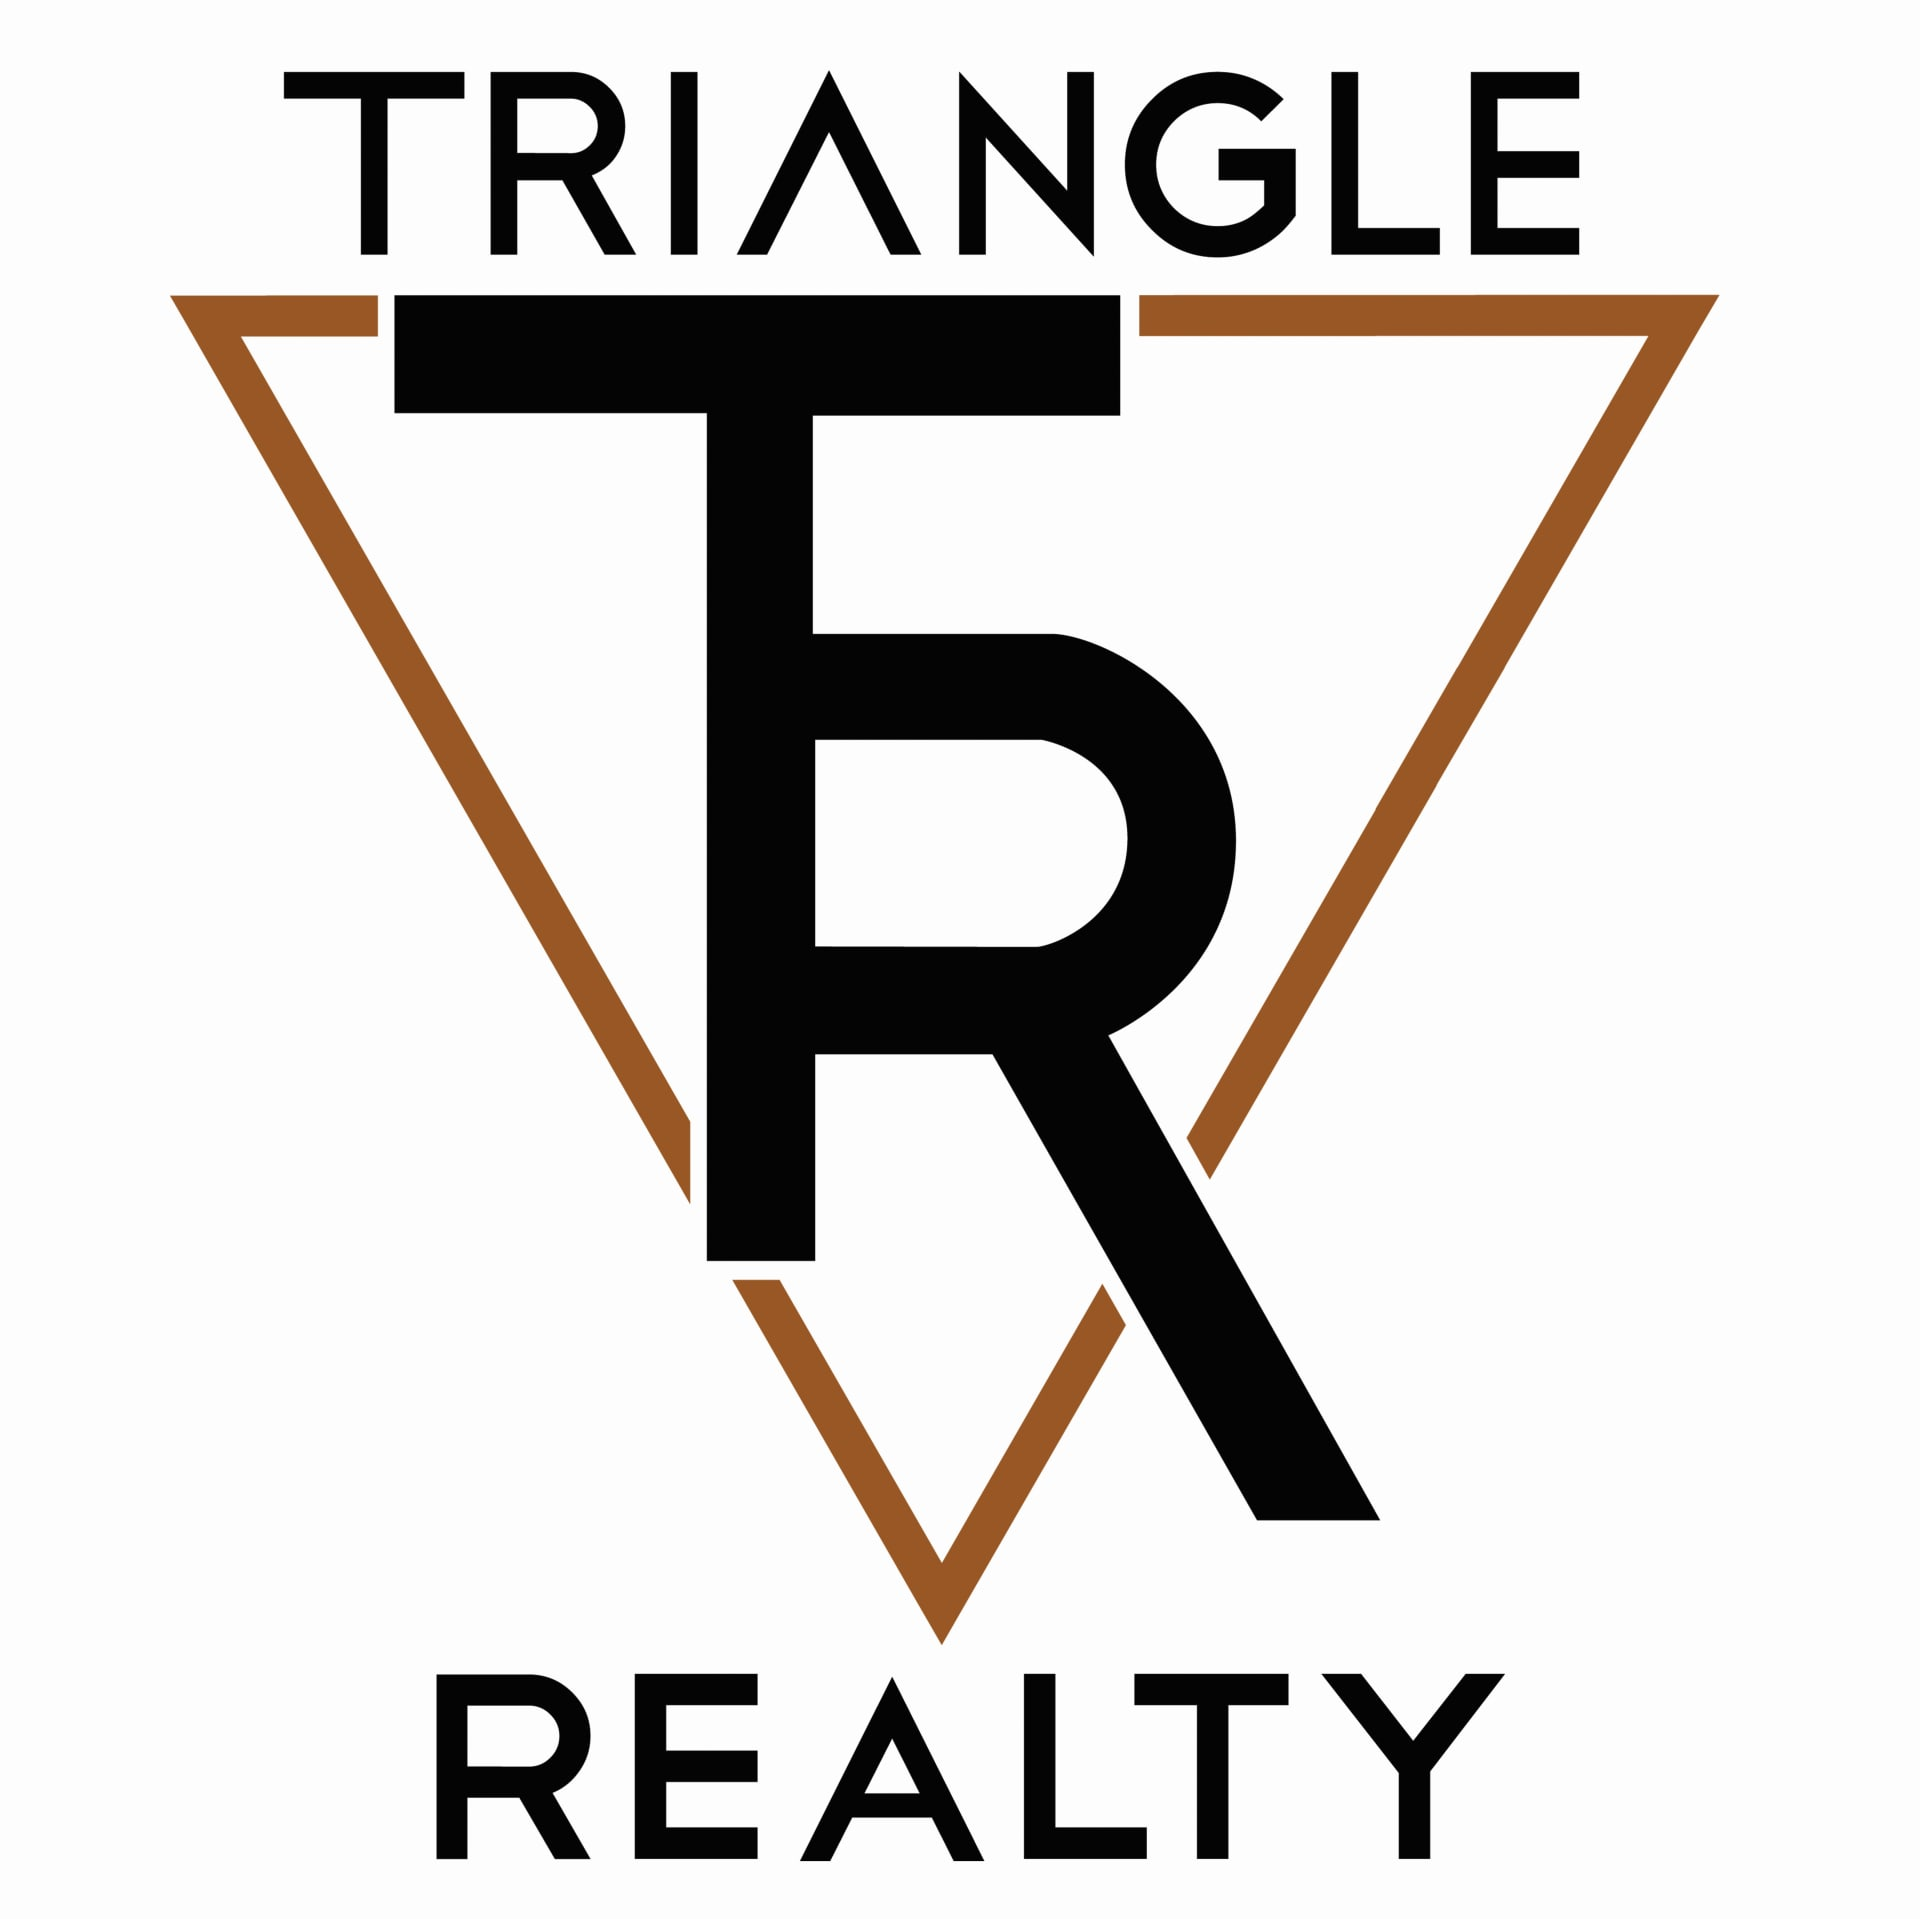 Triangle-Realty-w1920.jpg